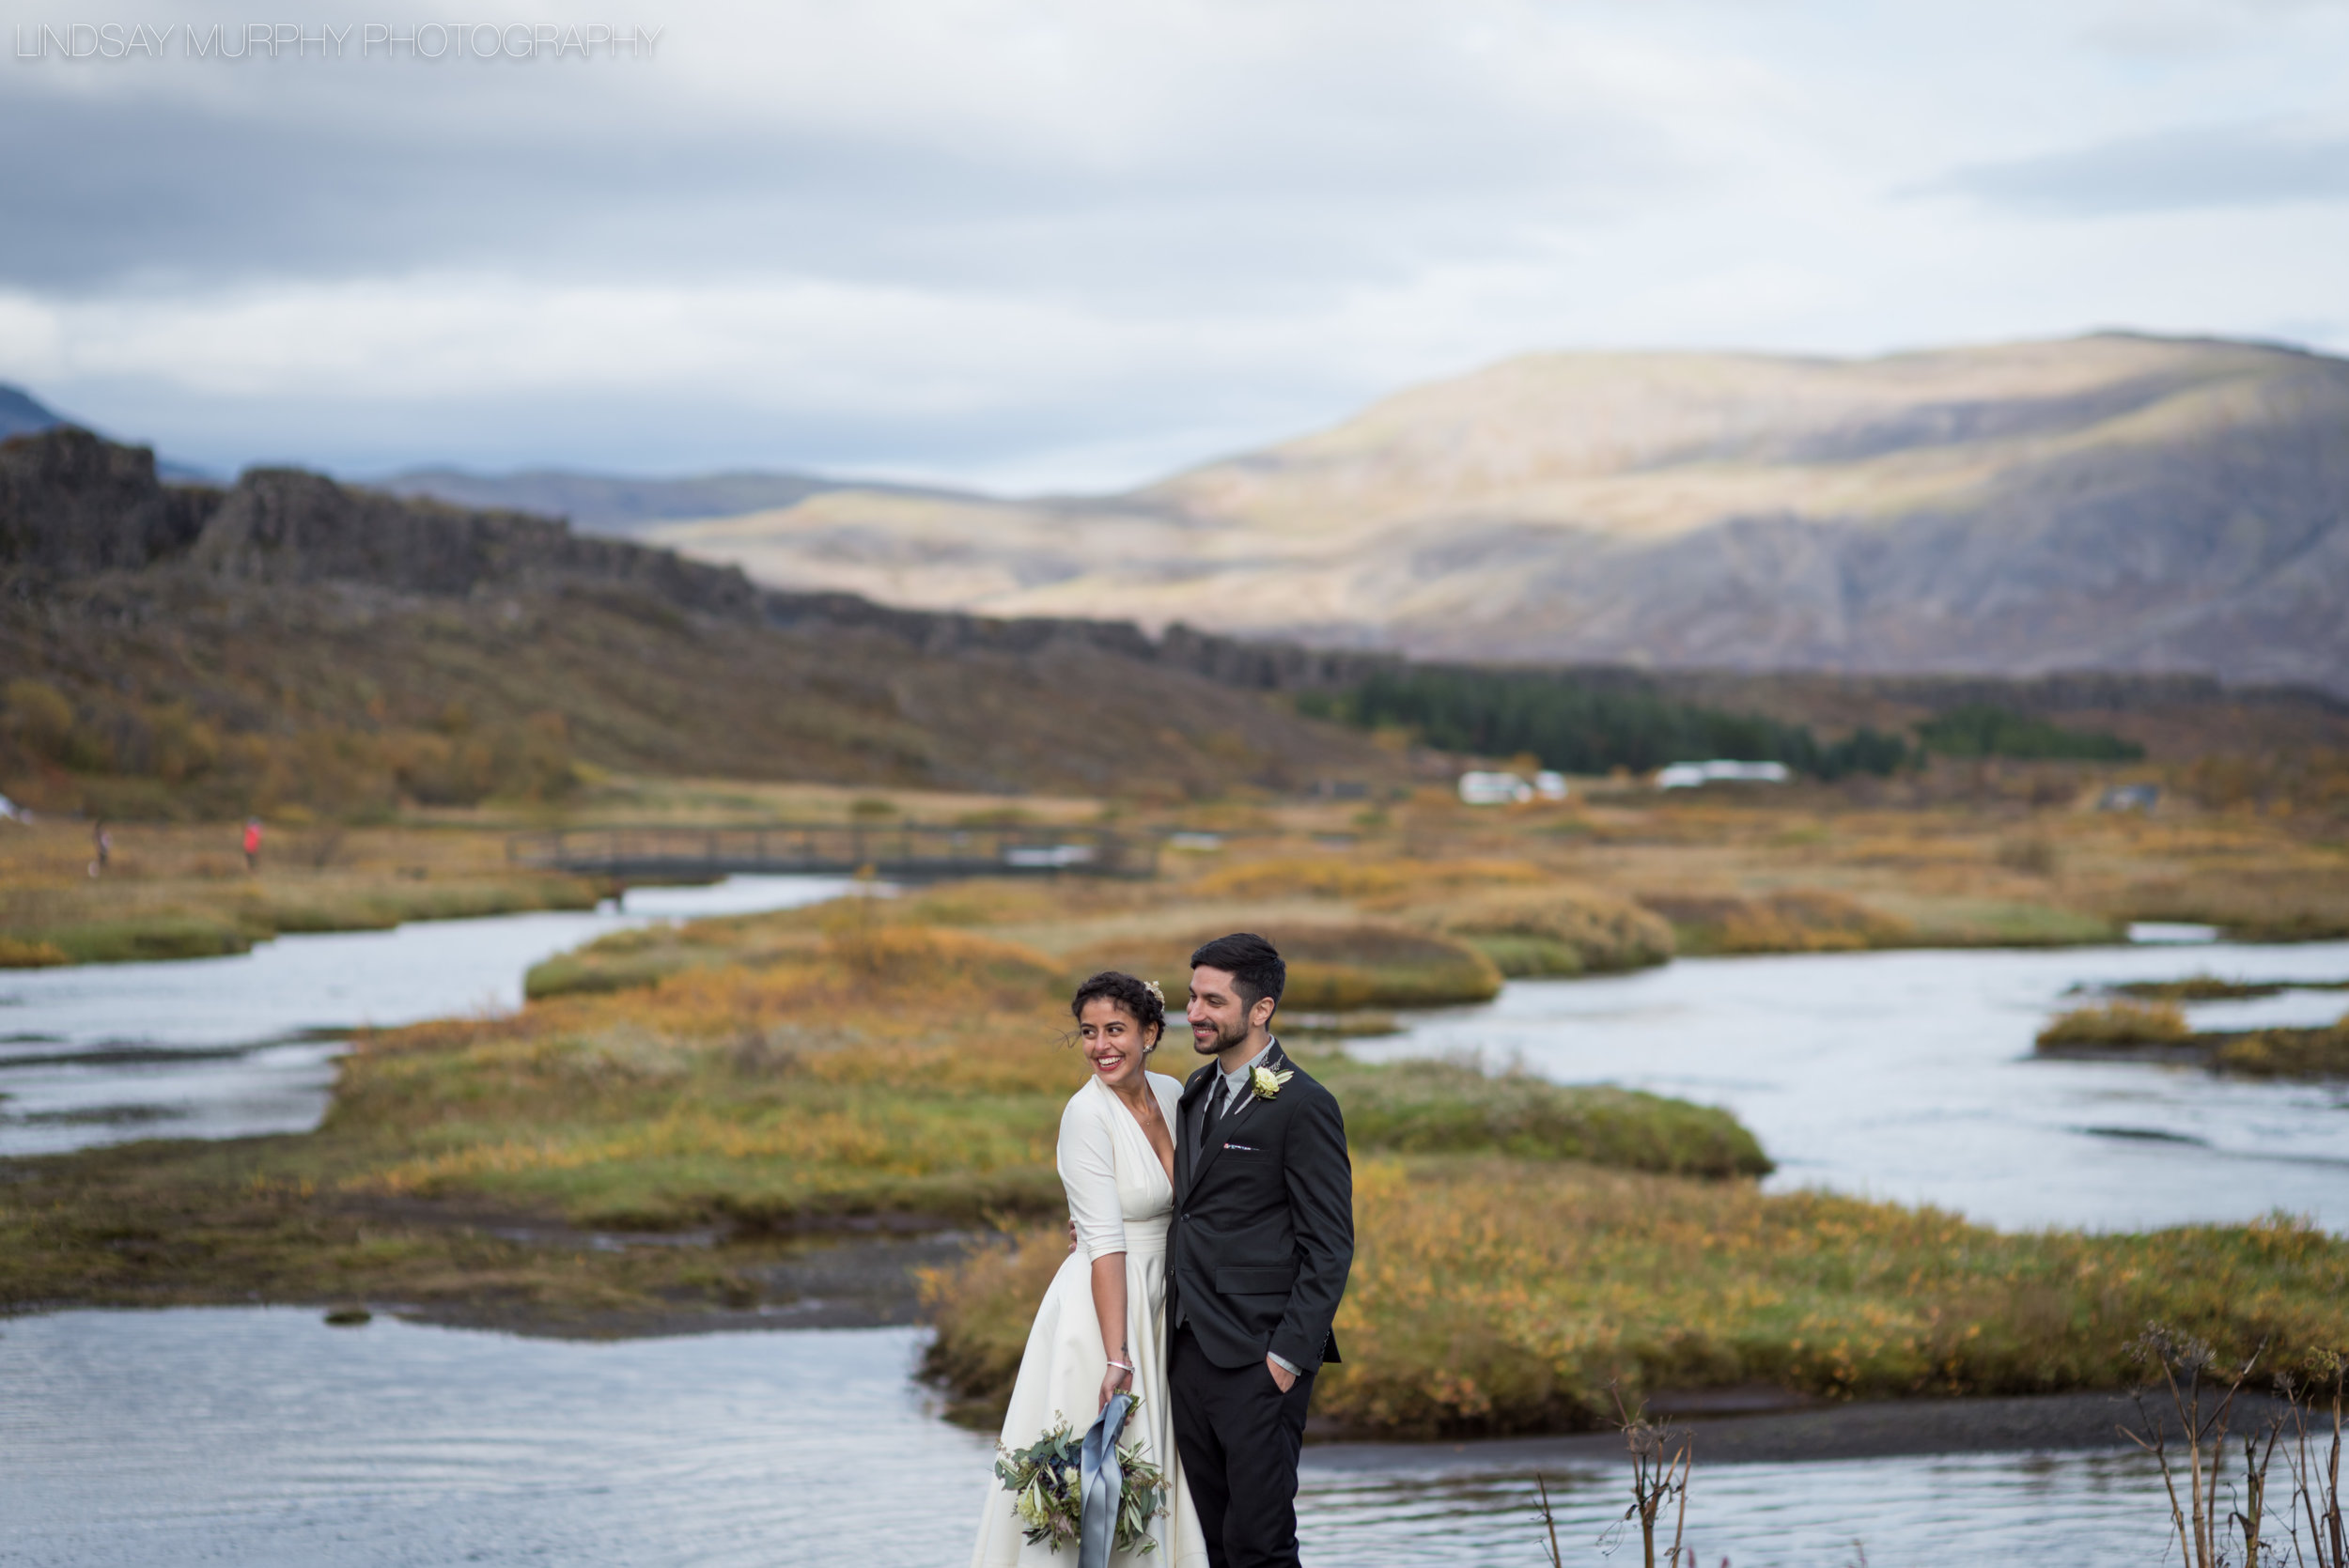 Destination_Iceland_Adventure_Wedding-365.jpg